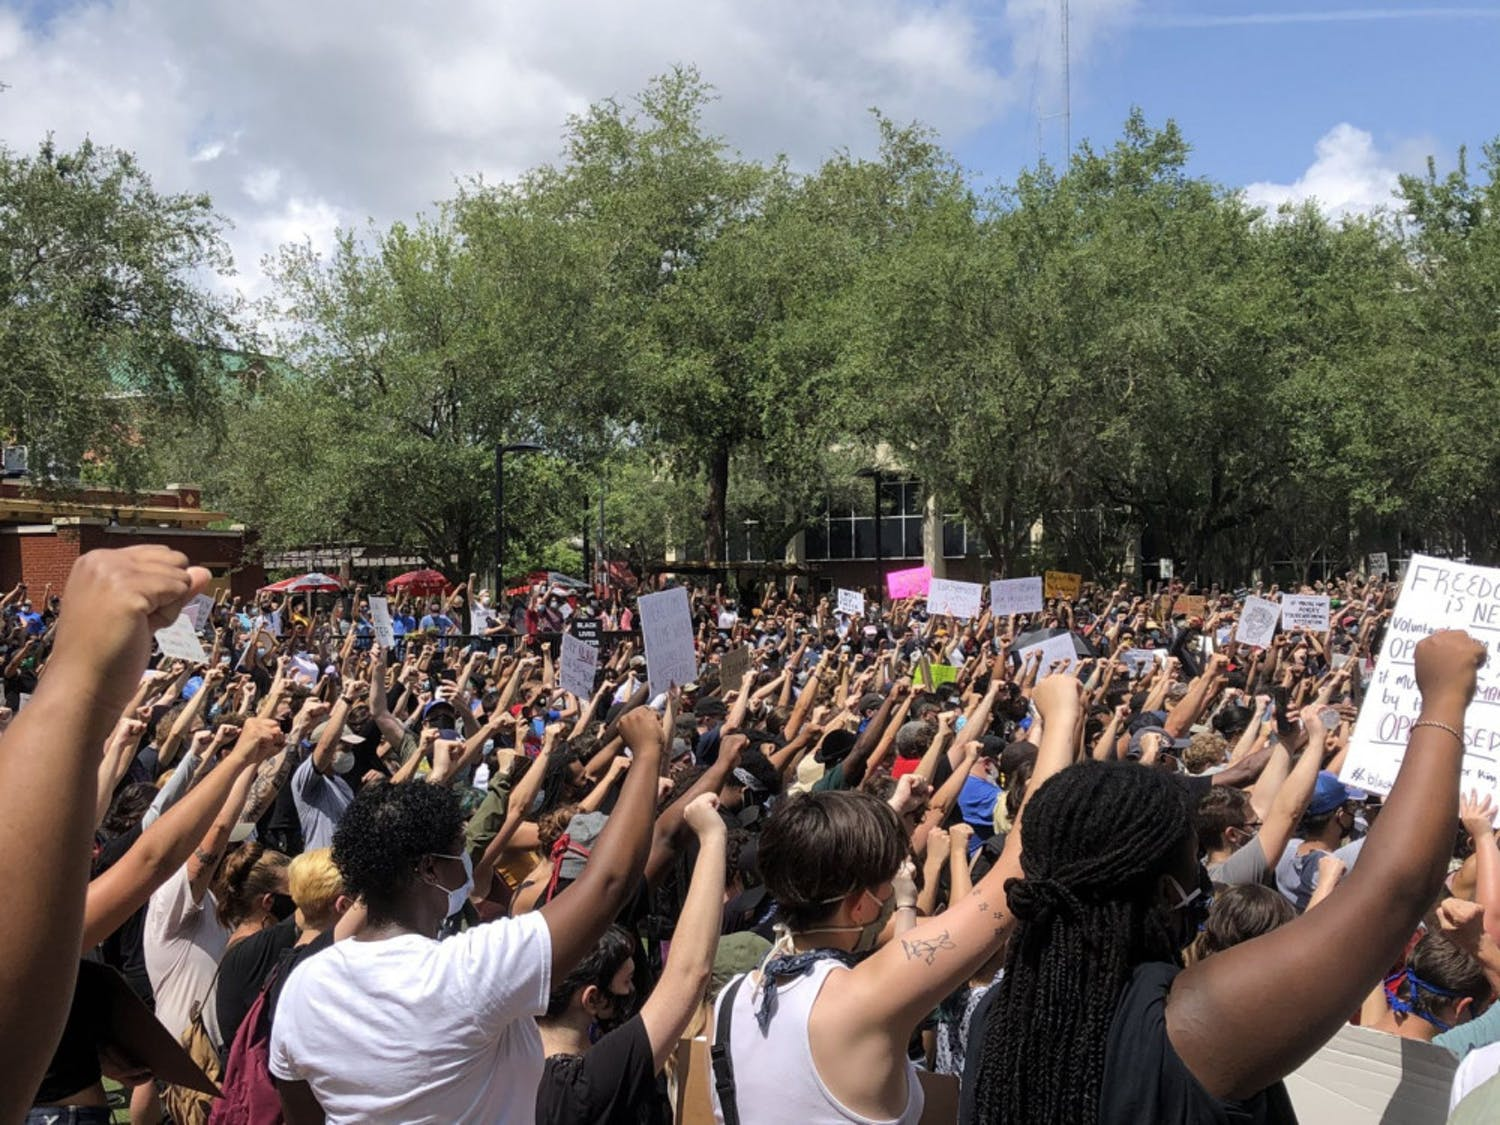 A moment of silence among the hundreds of protestors washes over Bo Diddly plaza, each of the participants holding fists in the air as a message of solidarity.